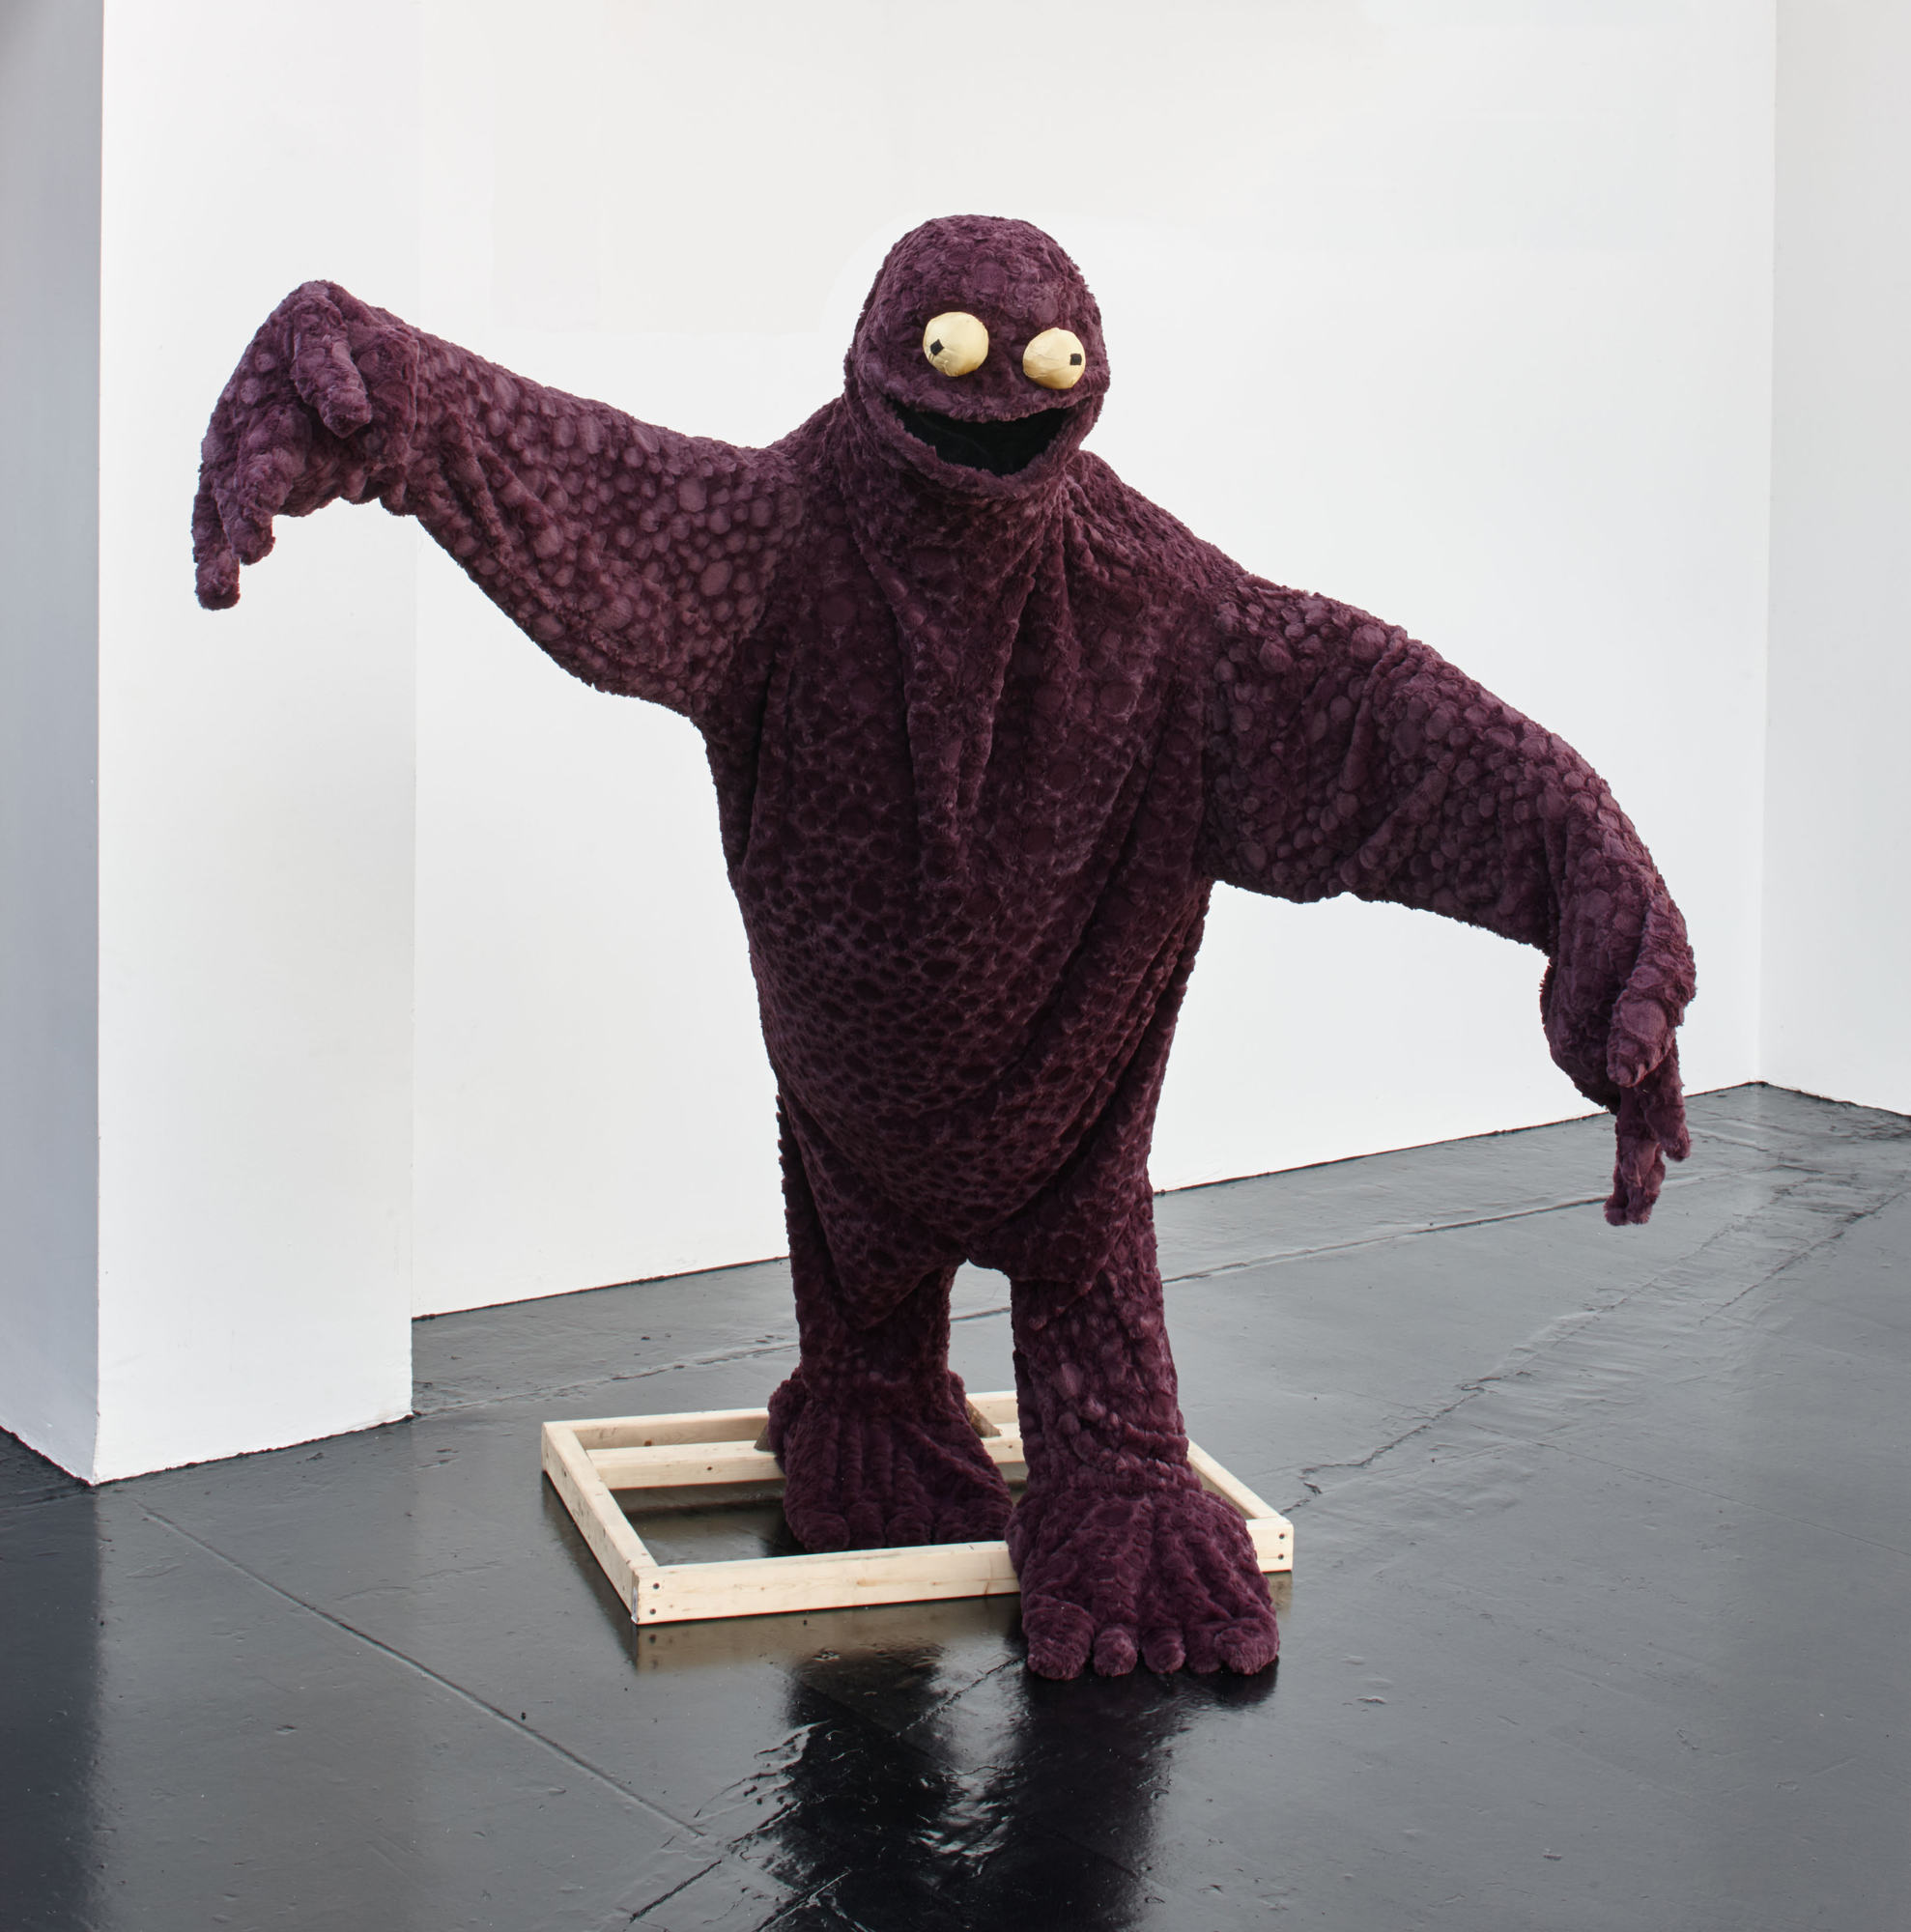 Stefan Tcherepnin - Cuddle Monster, 2014